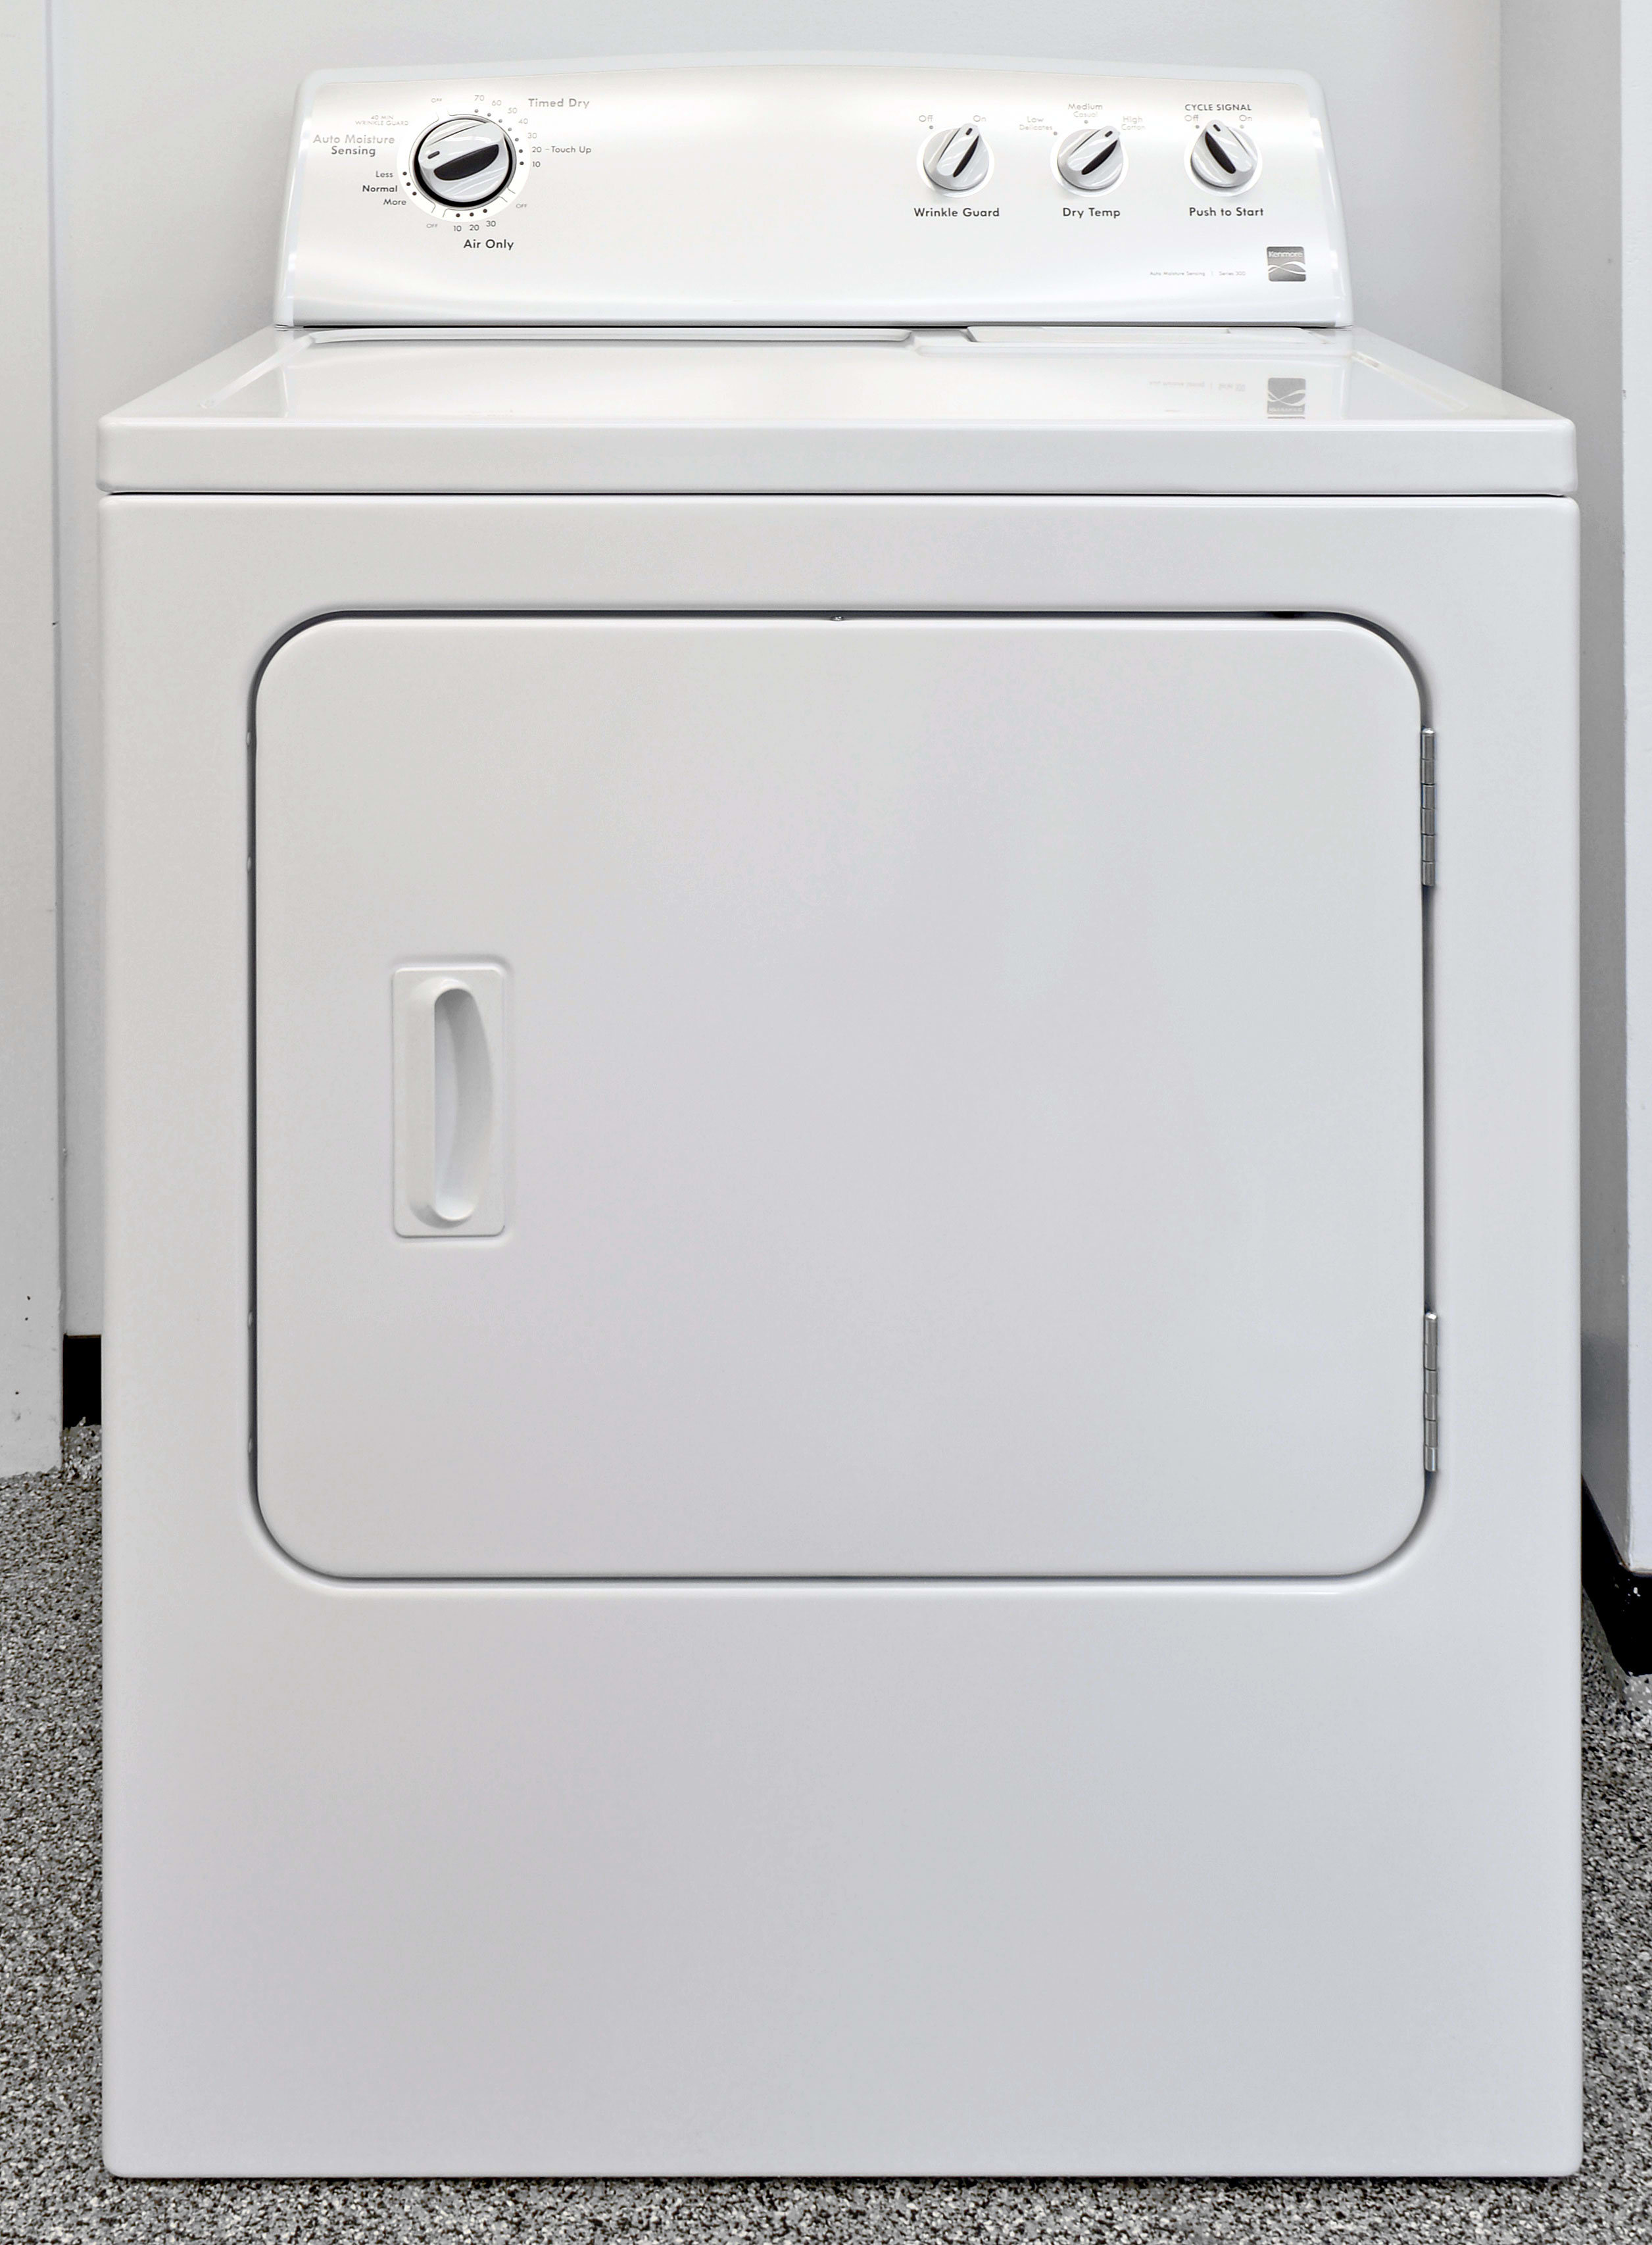 The basic 7.0-cu.-ft. Kenmore 62342 is visually neutral.